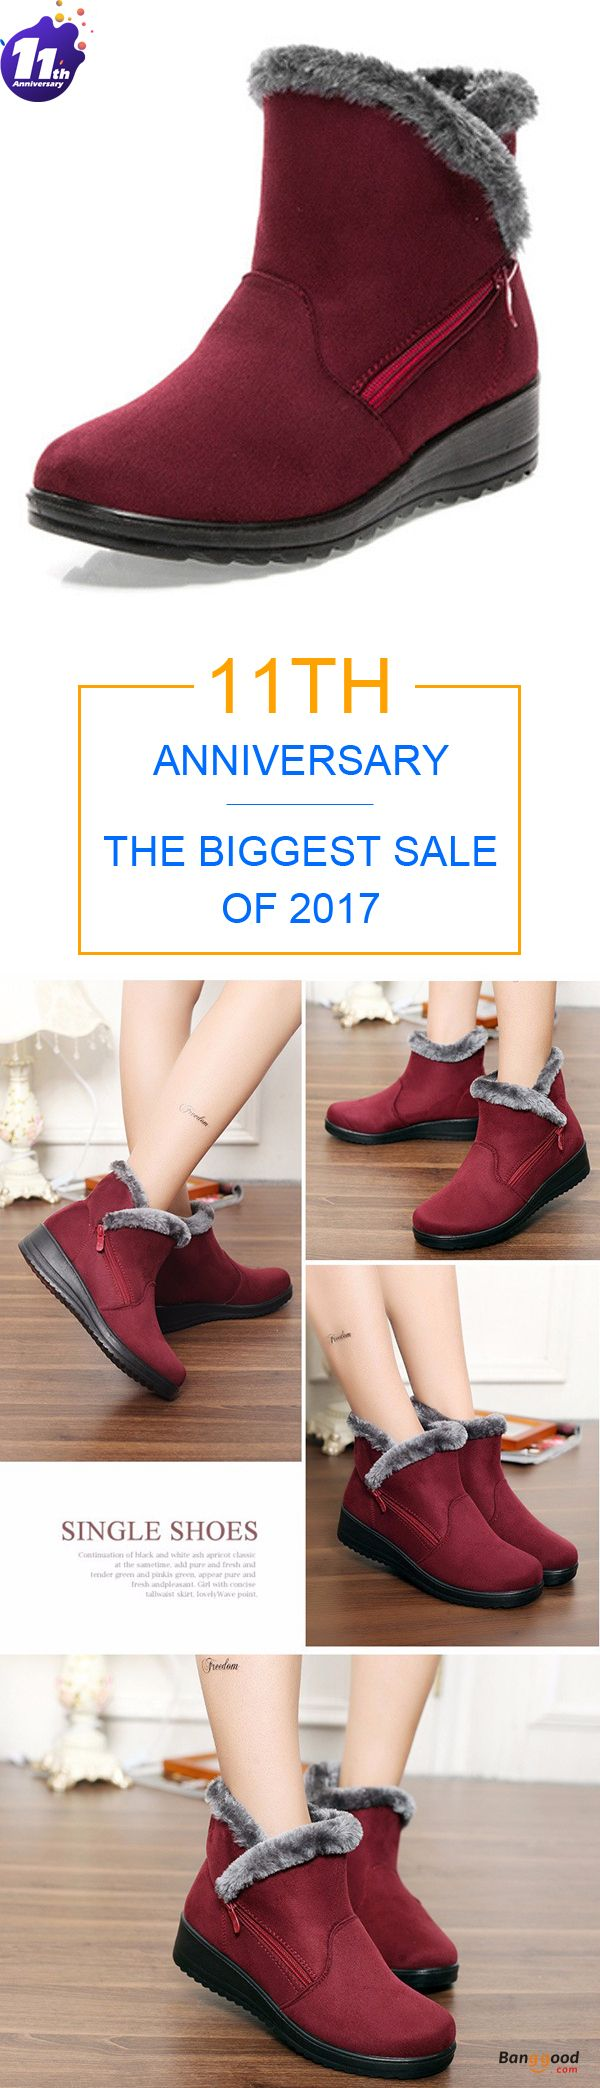 Promotion Price: US$24.75 + Free shipping. Fall in love with casual and warm style! New Large Size Women Winter Boots Round Toe Ankle Short Snow Boots.